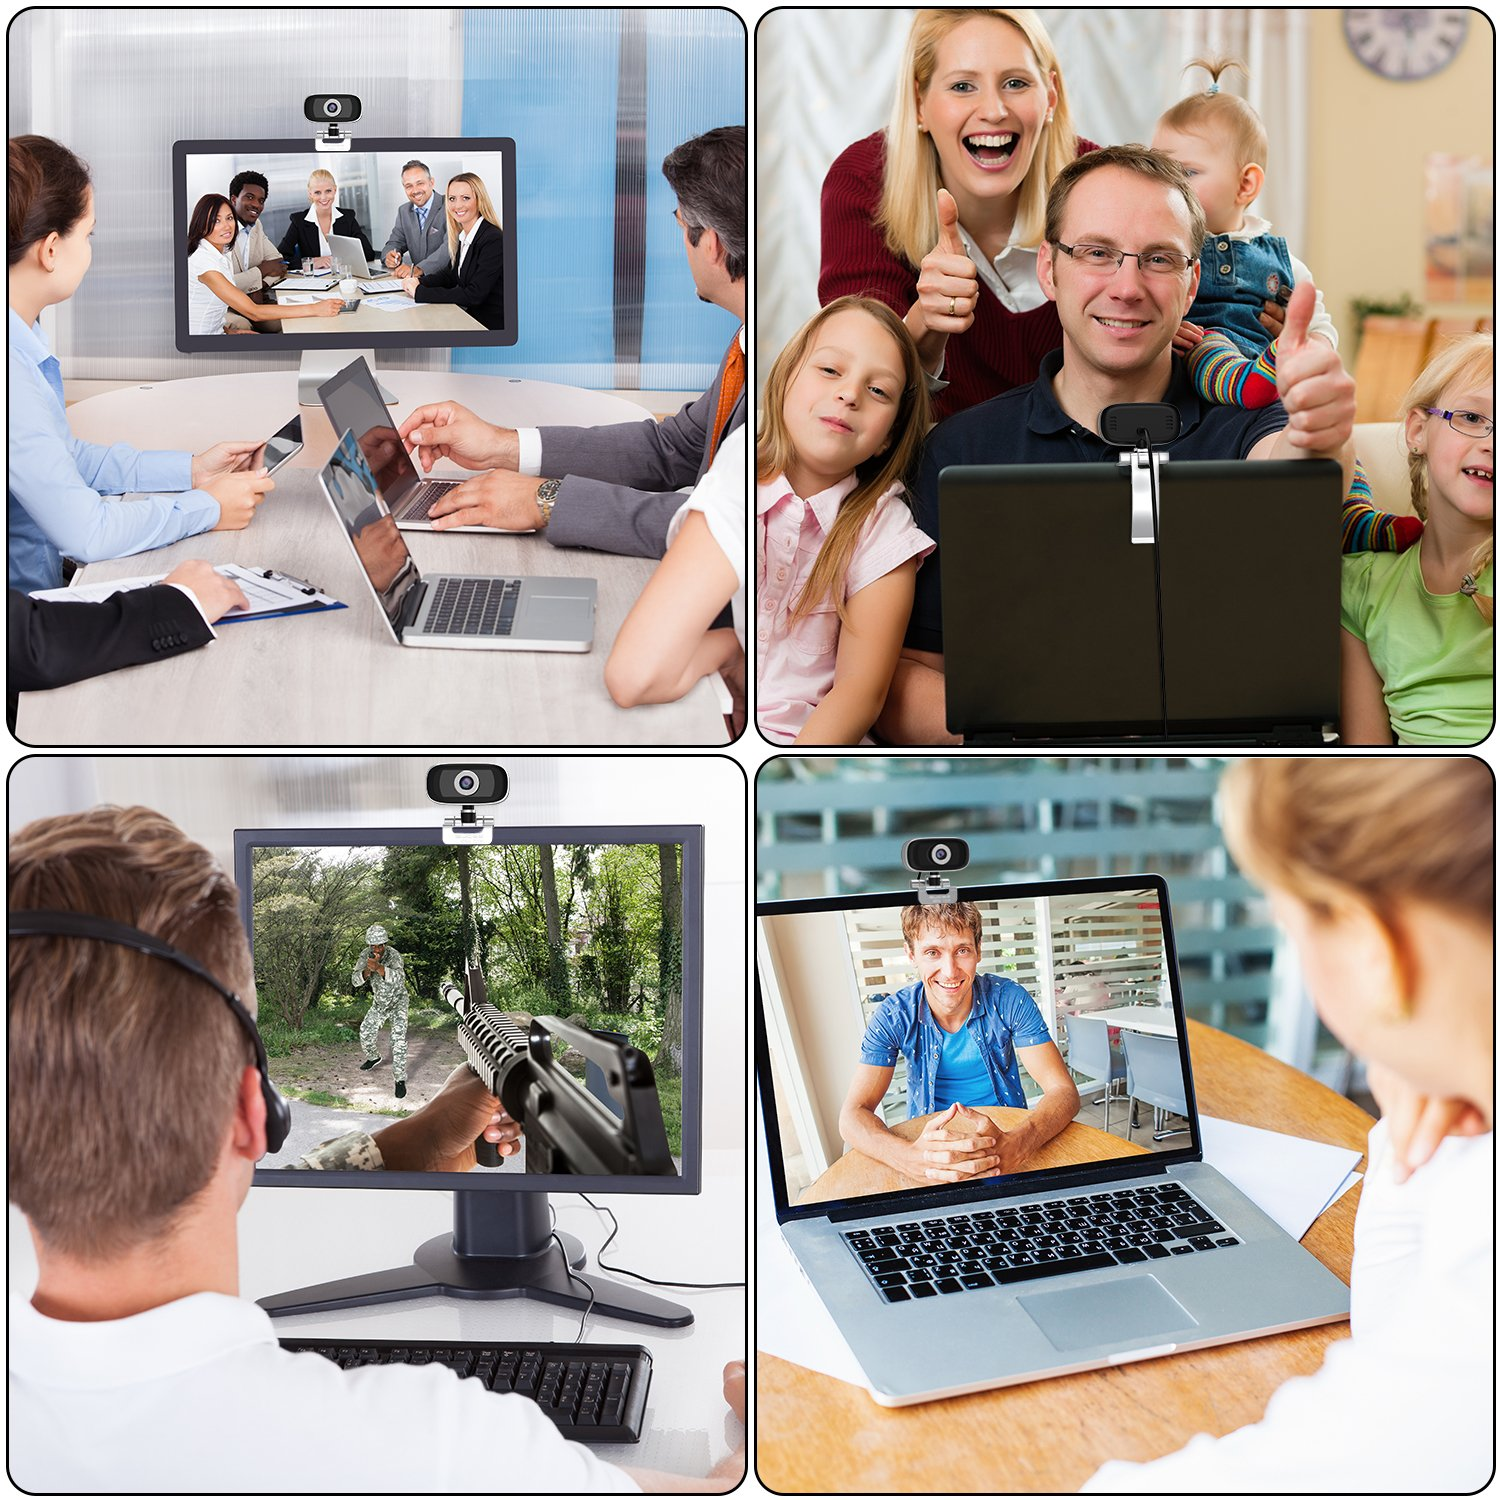 GUCEE HD96 720P HD Webcam with Tripod Ready Base (Tripod Not Included), Web Camera HD Microphone Wide Angle USB Plug and Play, Widescreen Calling Recording for Skype, Win 7 / 8 / 10, Apple Mac OS X by iRush (Image #6)